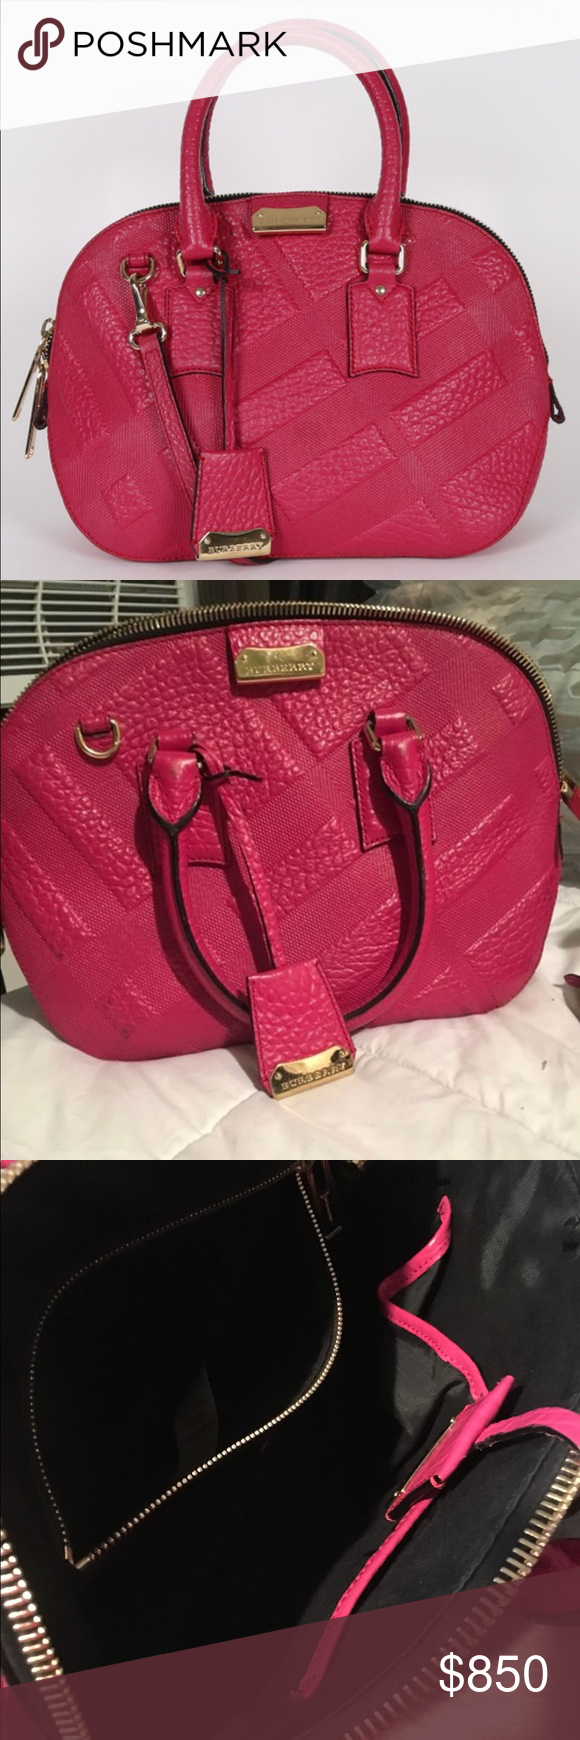 93a1d3064f3 🍃🌸Burberry Orchard Purse EUC Authentic Burberry Small Orchard Check  Embossed Vibrant Fuschia Leather satchel